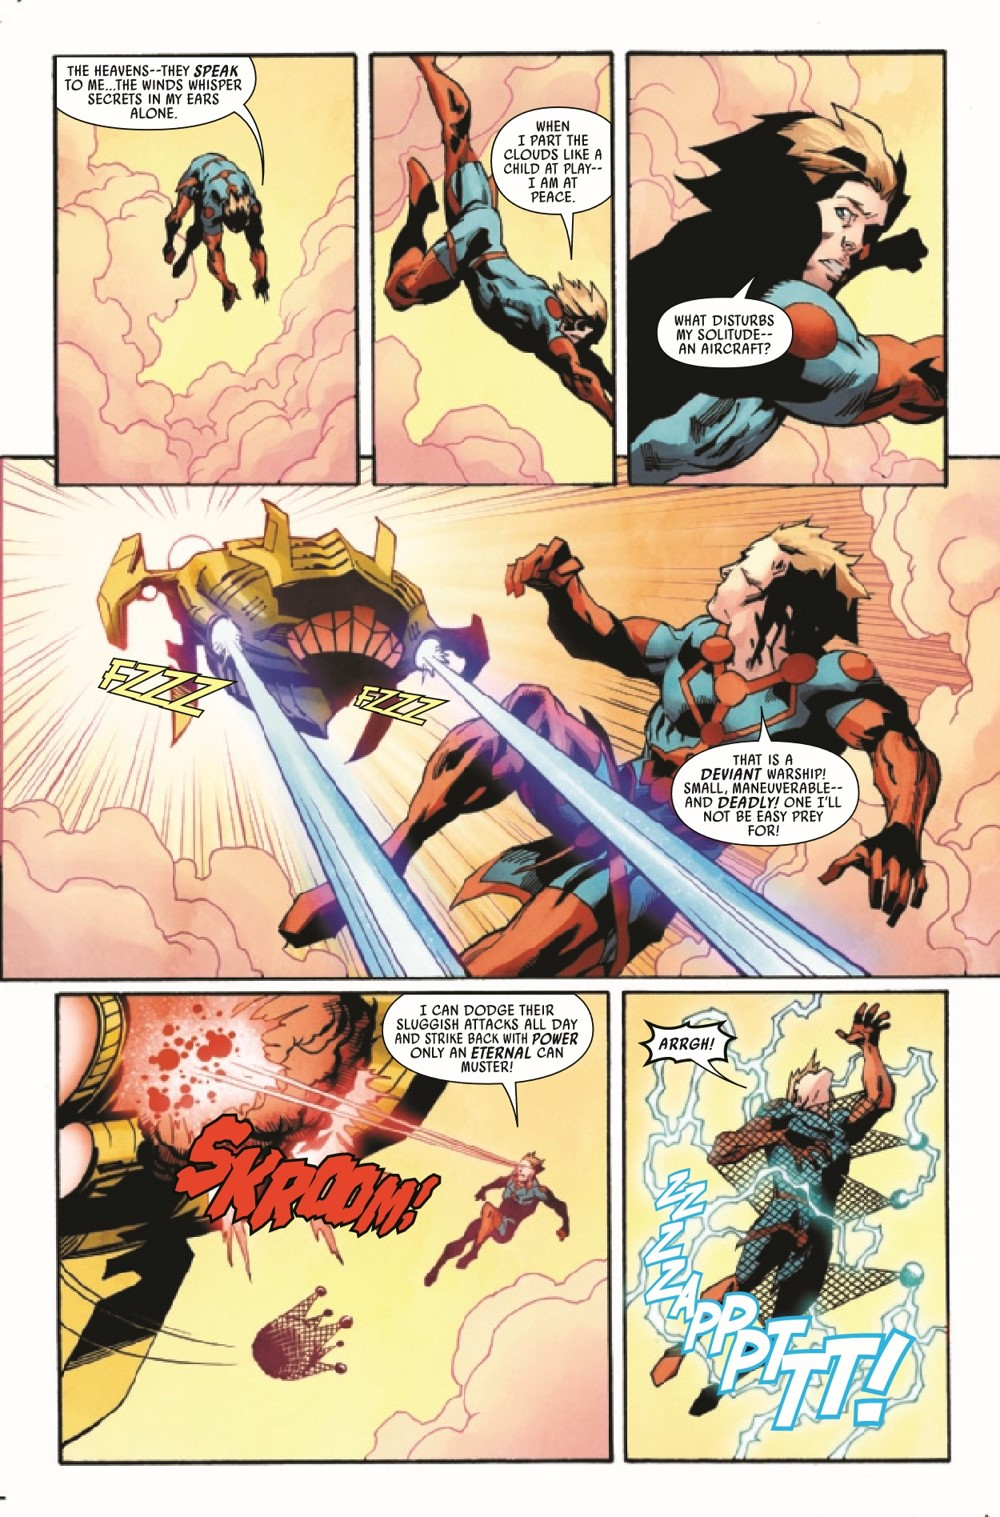 ETRNLSFOREVER2021001_Preview-3 ComicList Previews: ETERNALS FOREVER #1